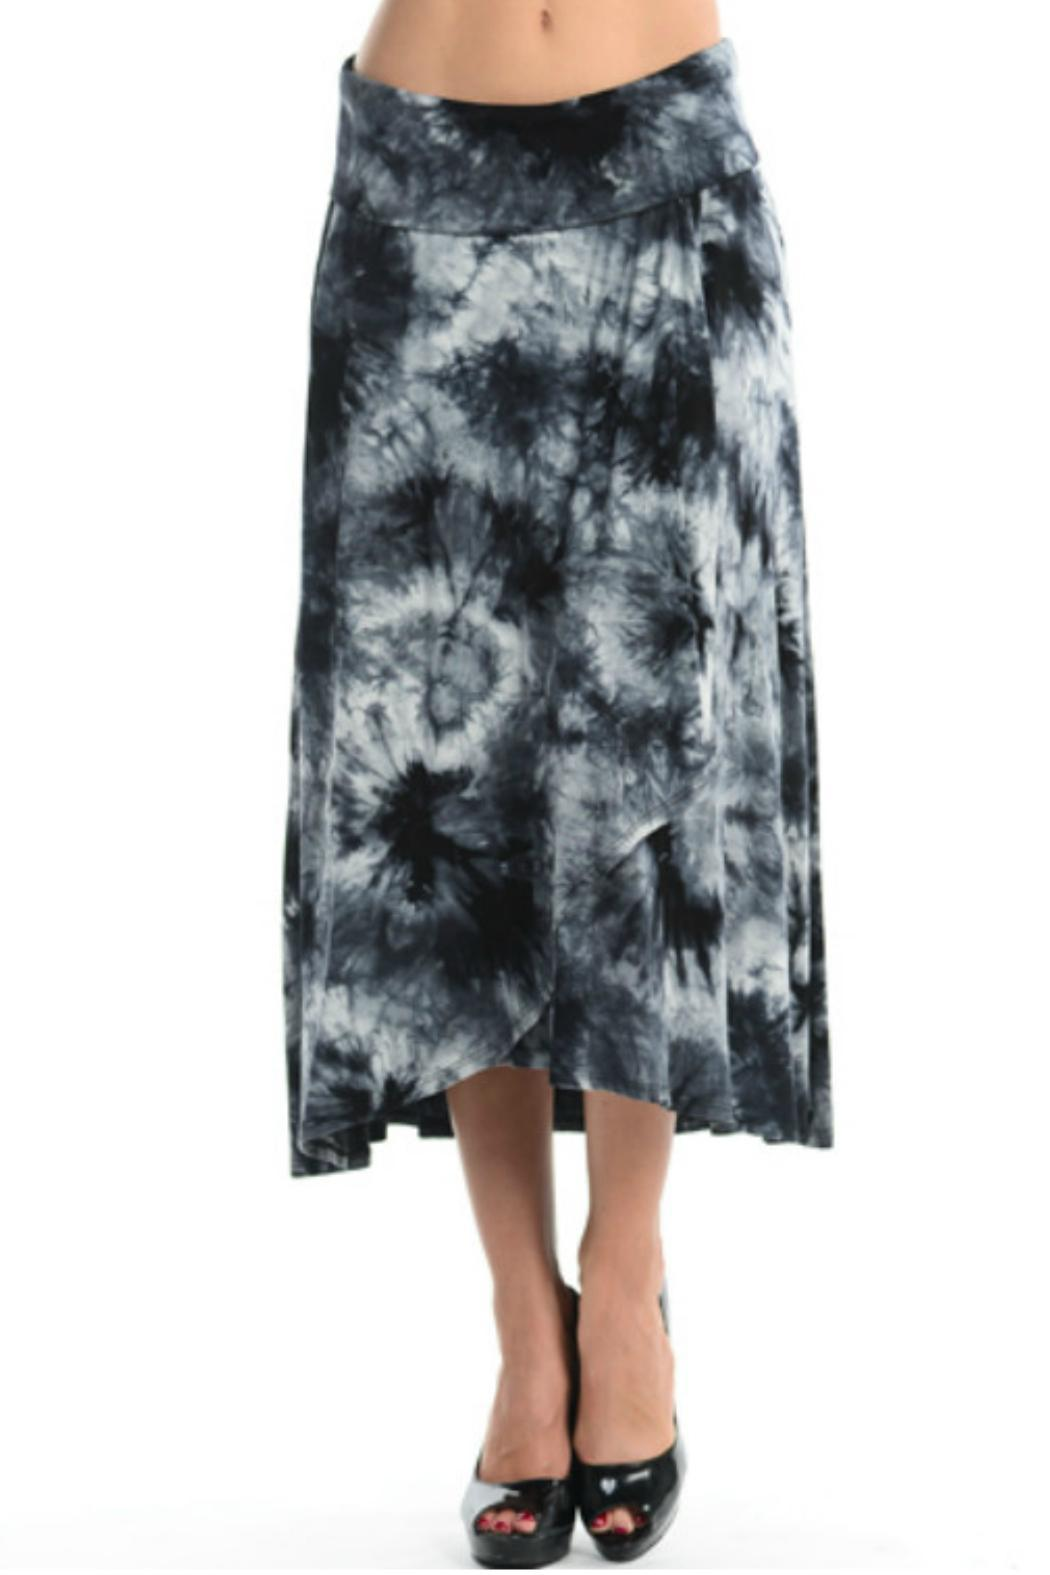 38839ac6d7 Cubism Black/white Tie-Dye Skirt from Cambria by New Moon — Shoptiques